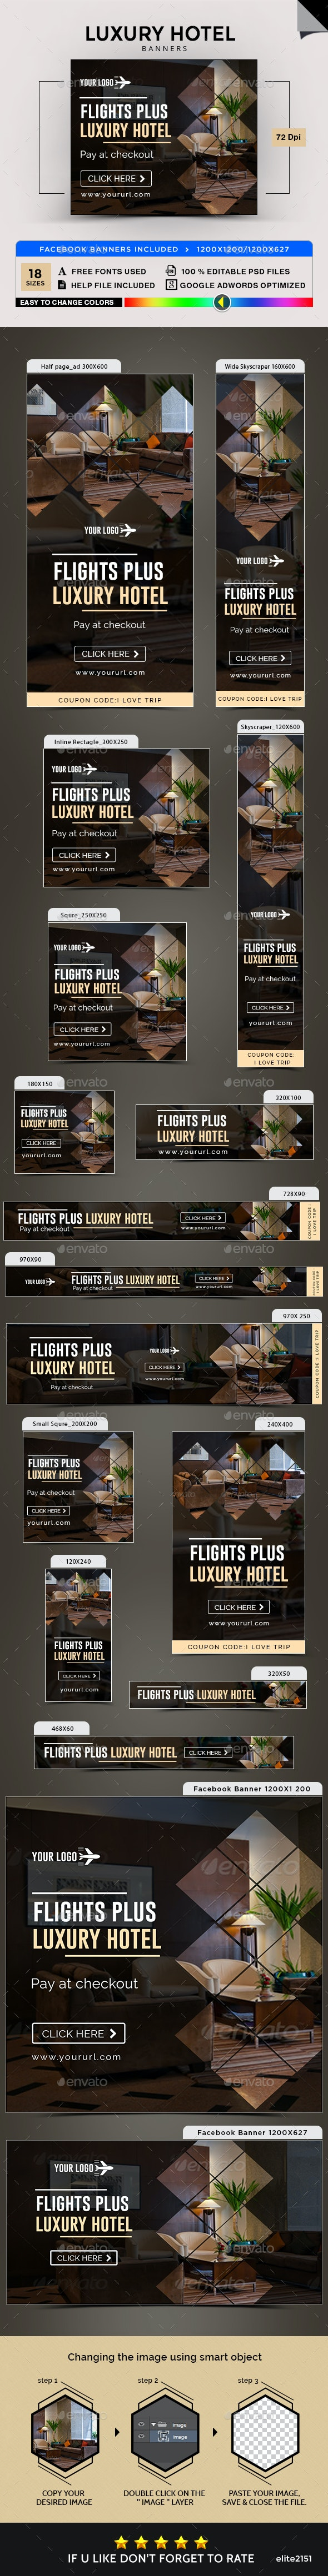 Luxury Hotel Banners - Banners & Ads Web Elements